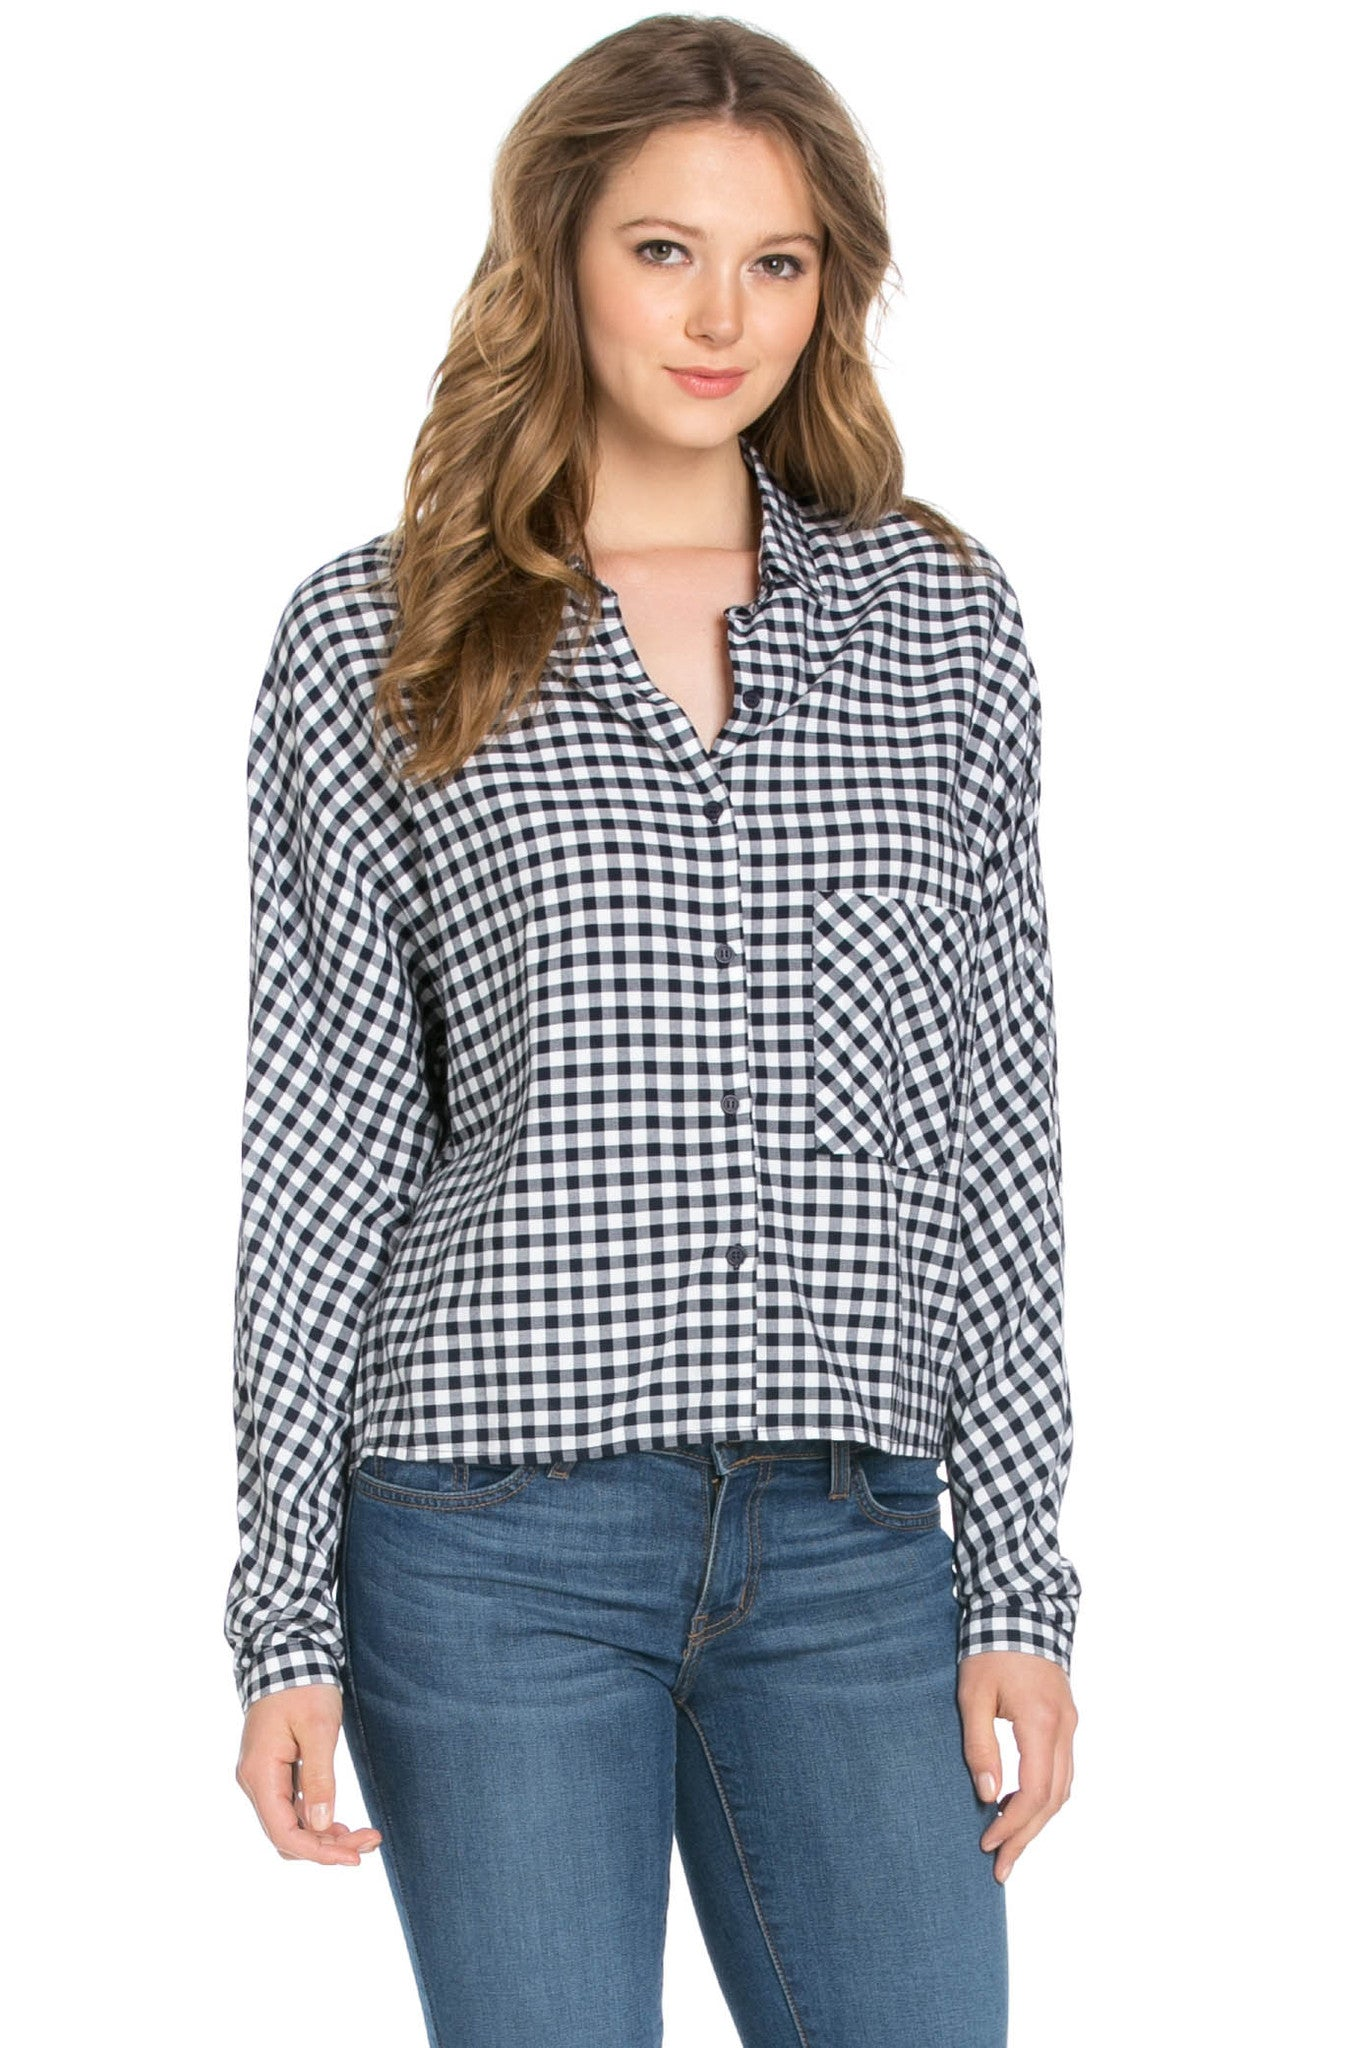 Gingham Shirt Navy White - Shirts - My Yuccie - 1